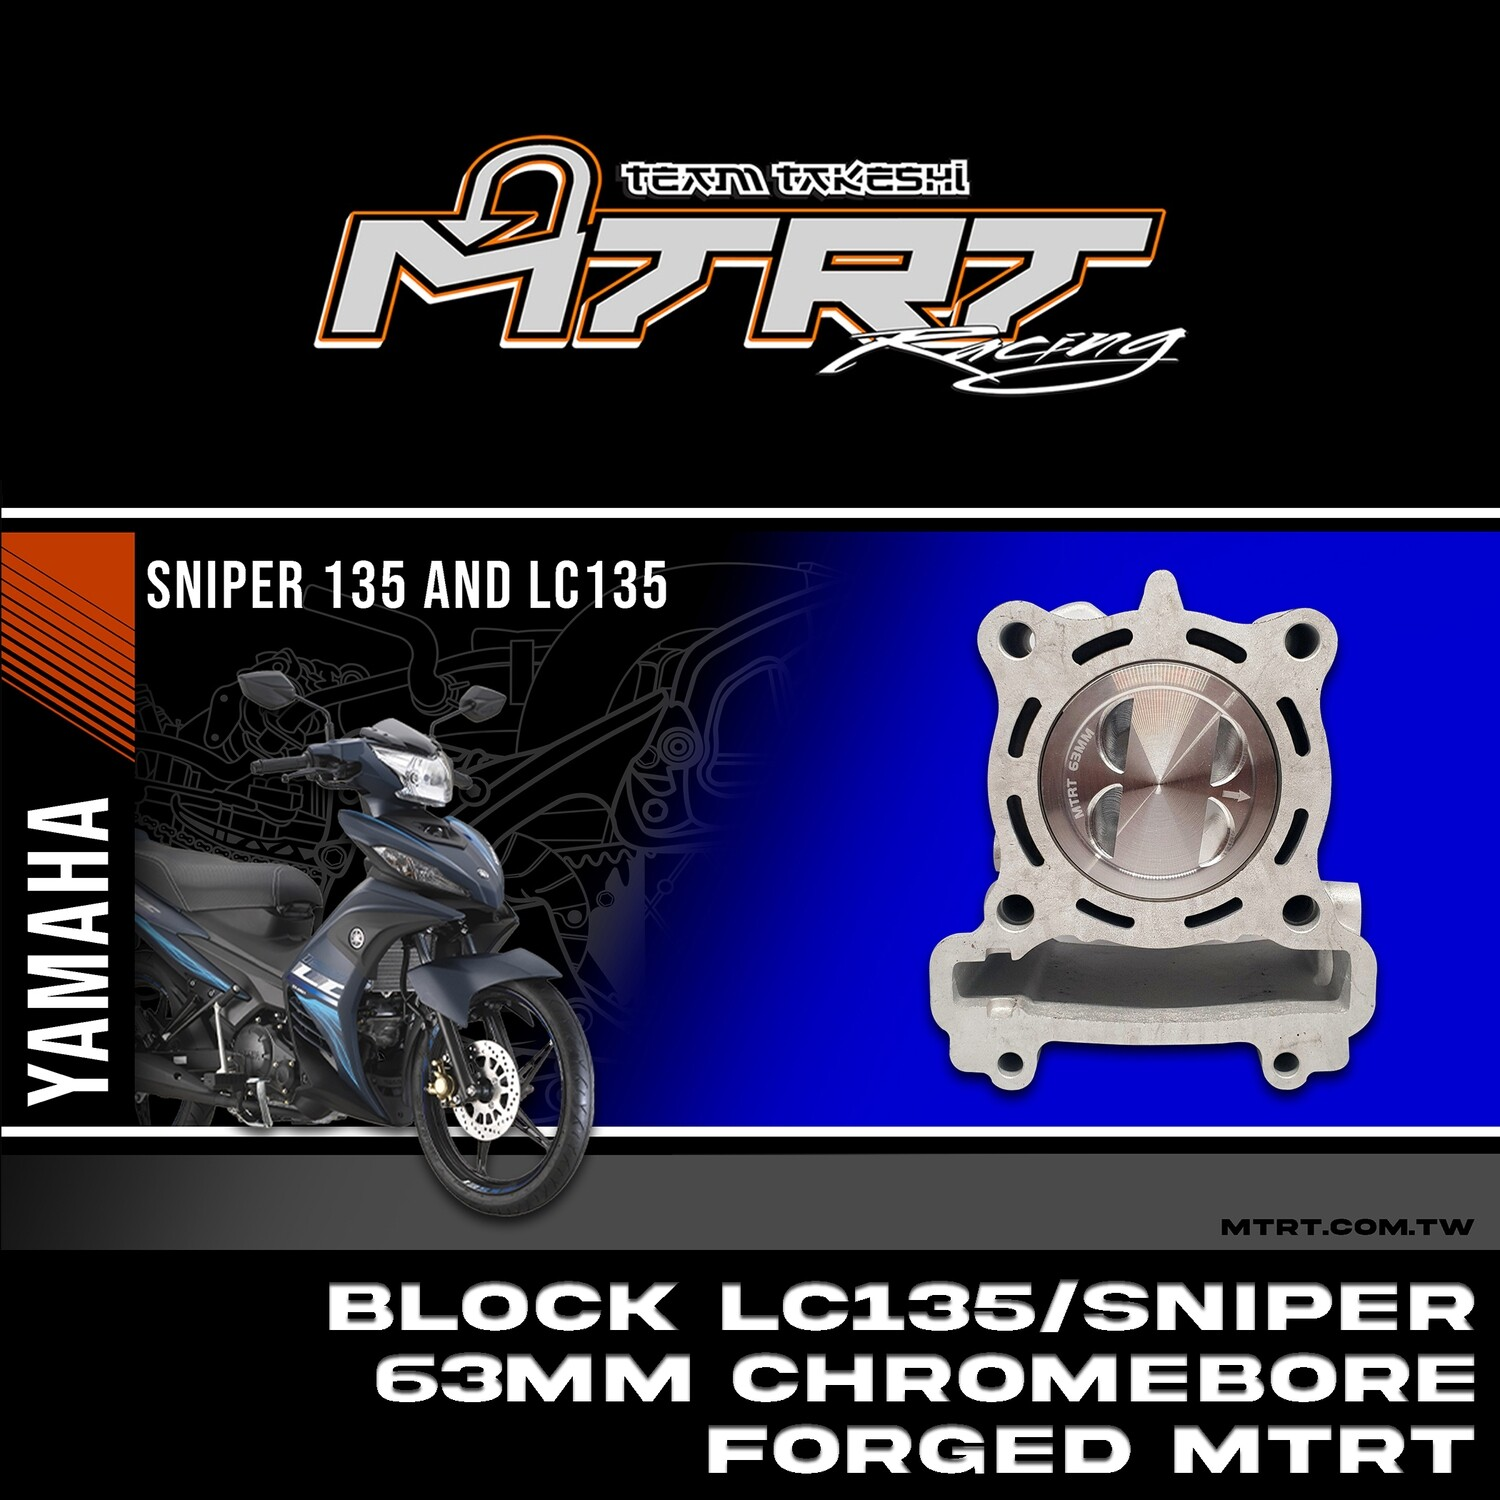 BLOCK LC135/SNIPER  63mm chromebore  FORGED MTRT